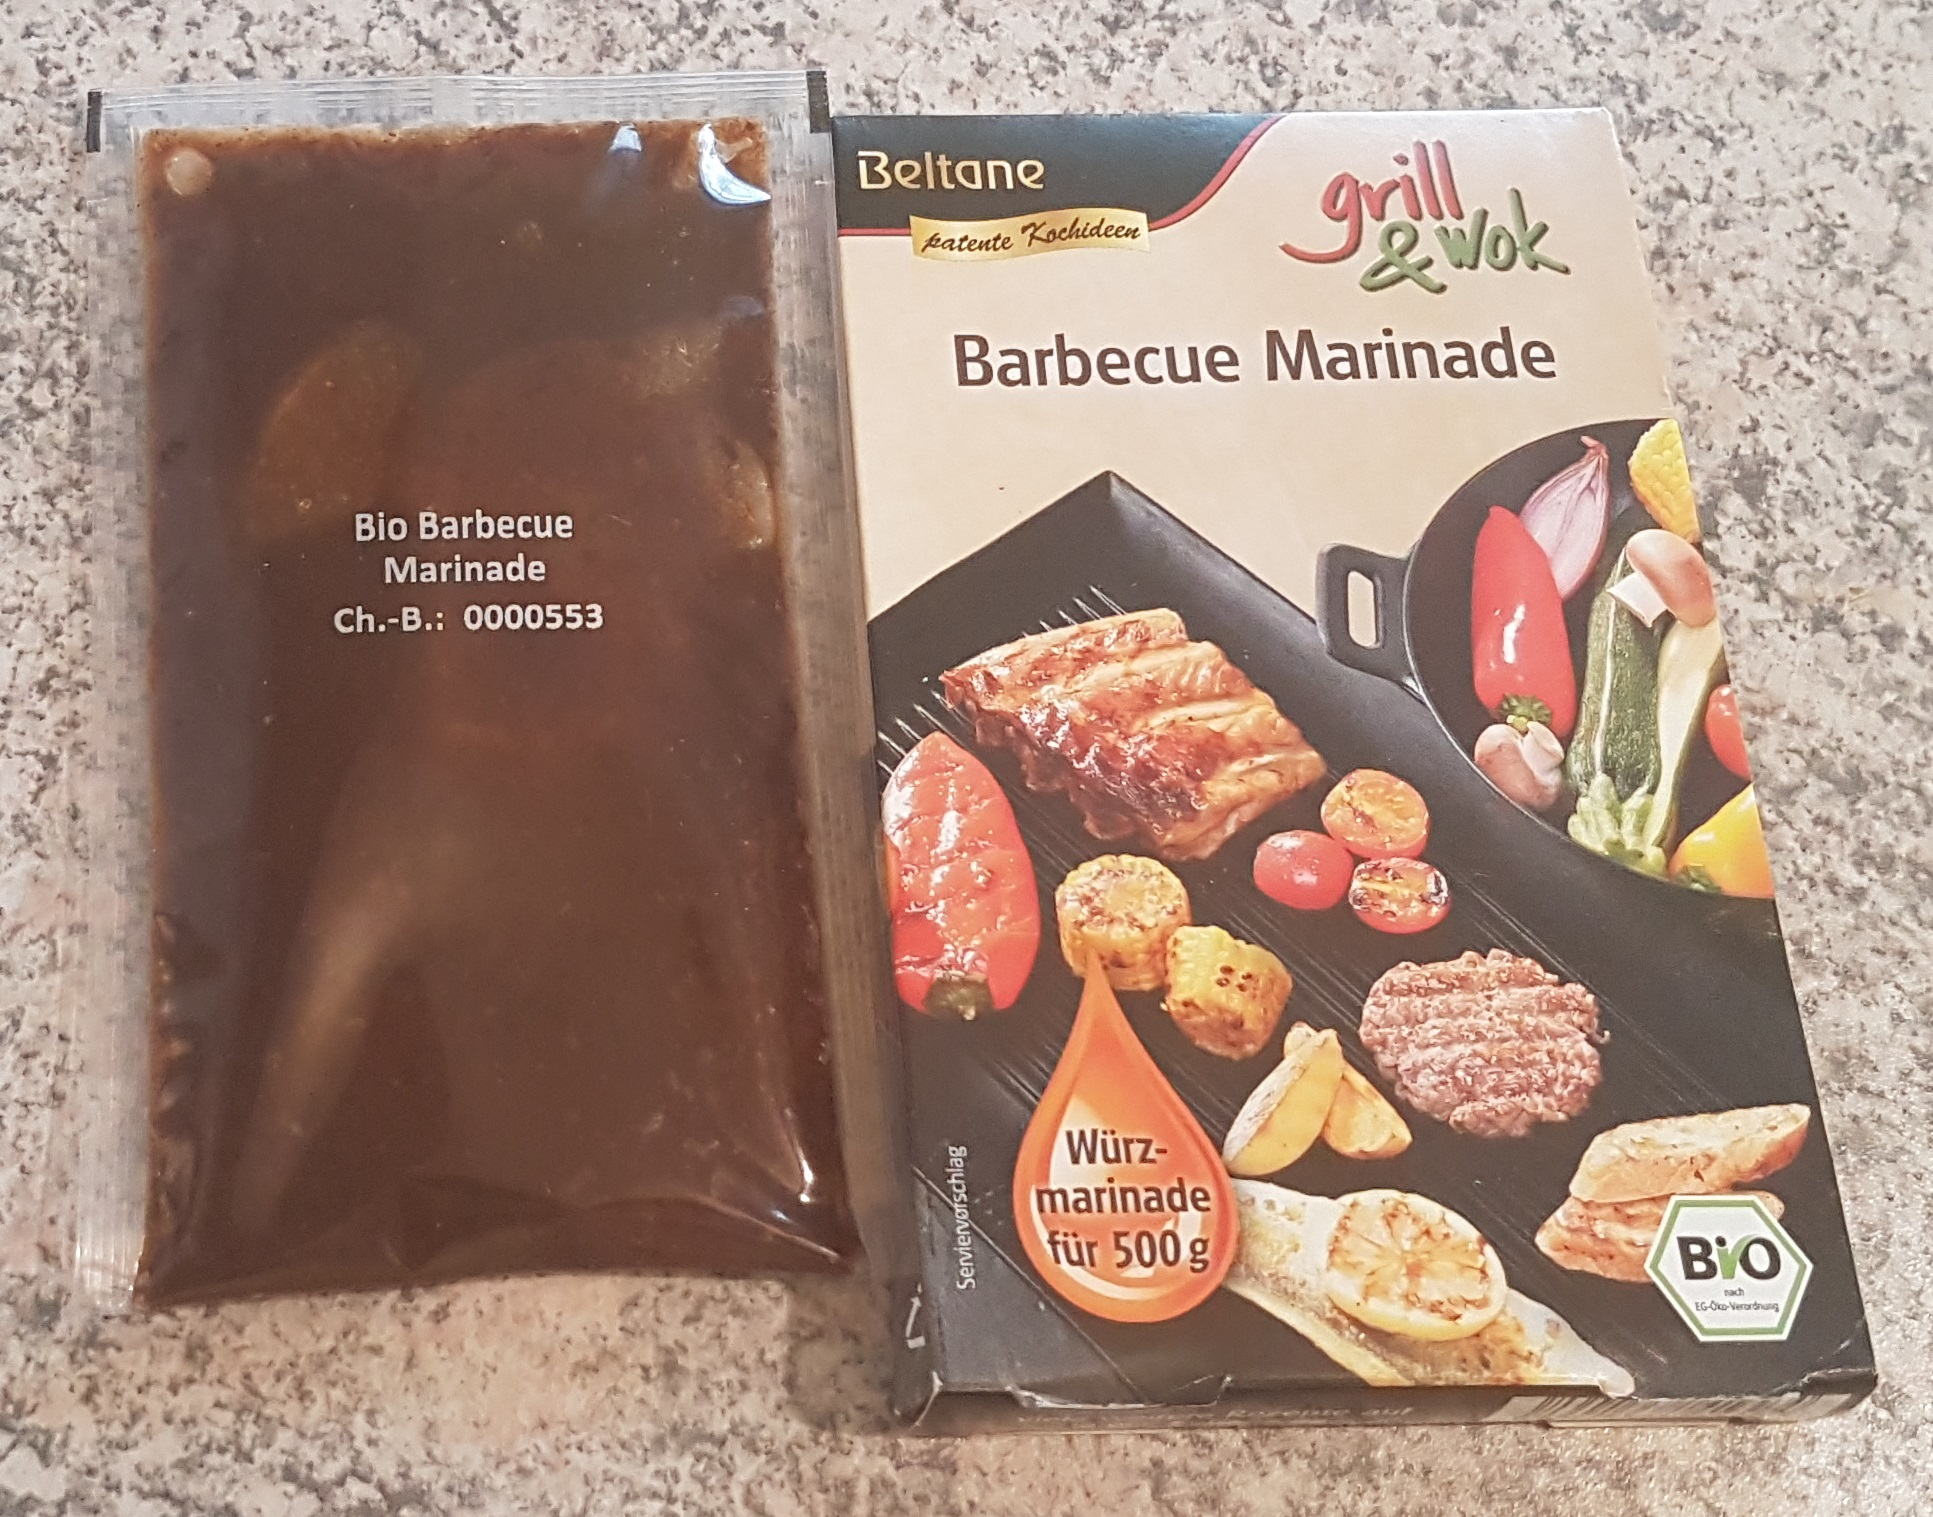 beltane-grill-wok-barbecue-marinade